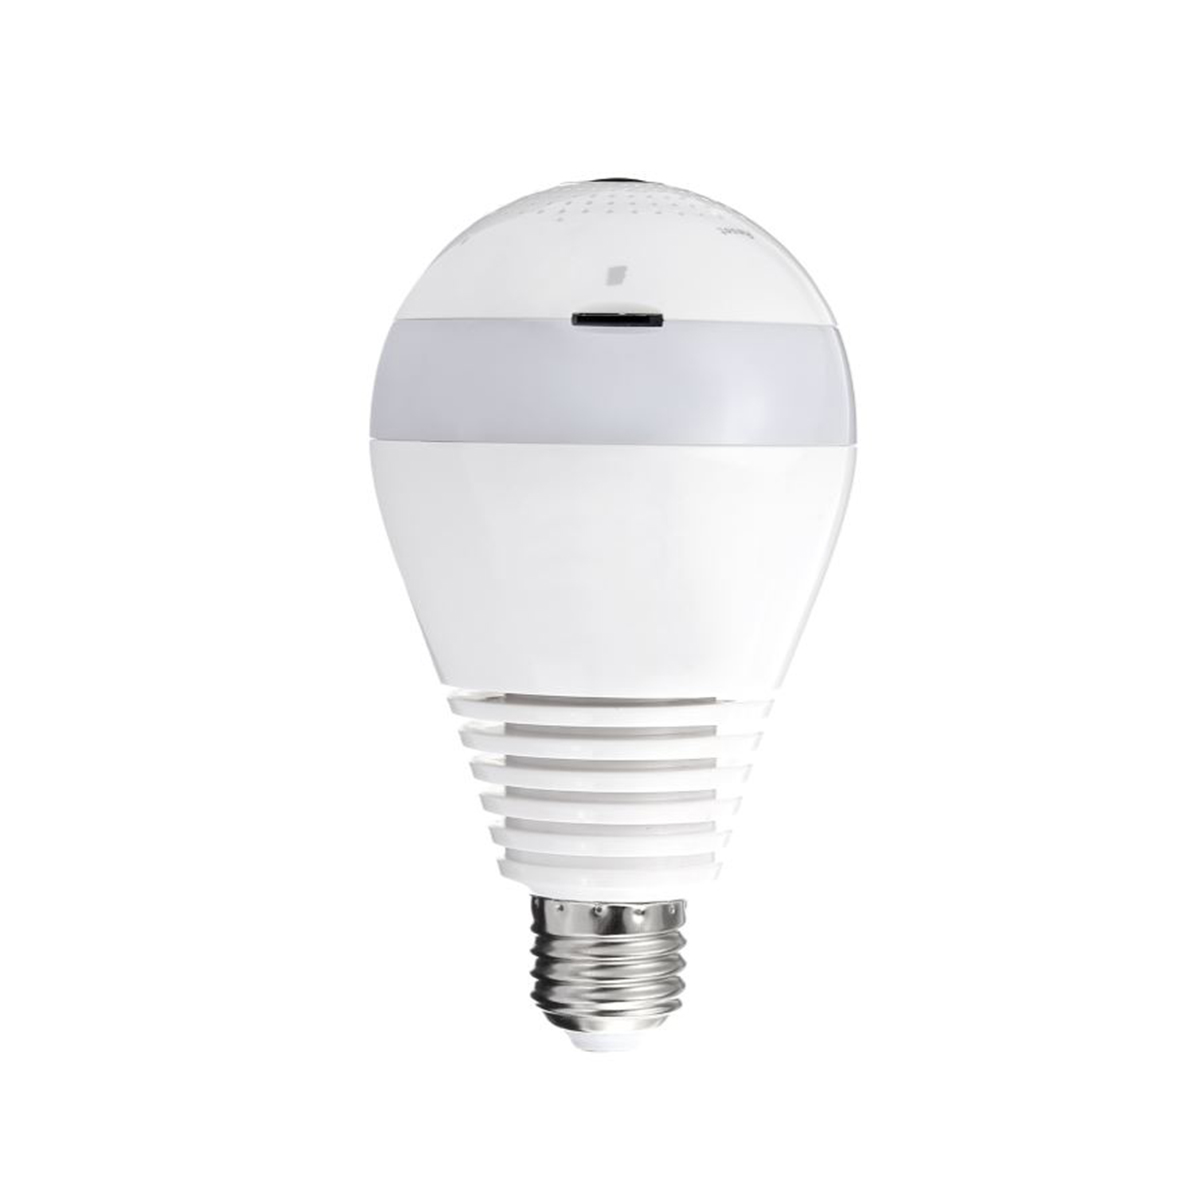 IAG-WIFI-Security-Camera-Lightbulb-with-LED-Lighting-No-Infrared-Eye-1-1200×1200